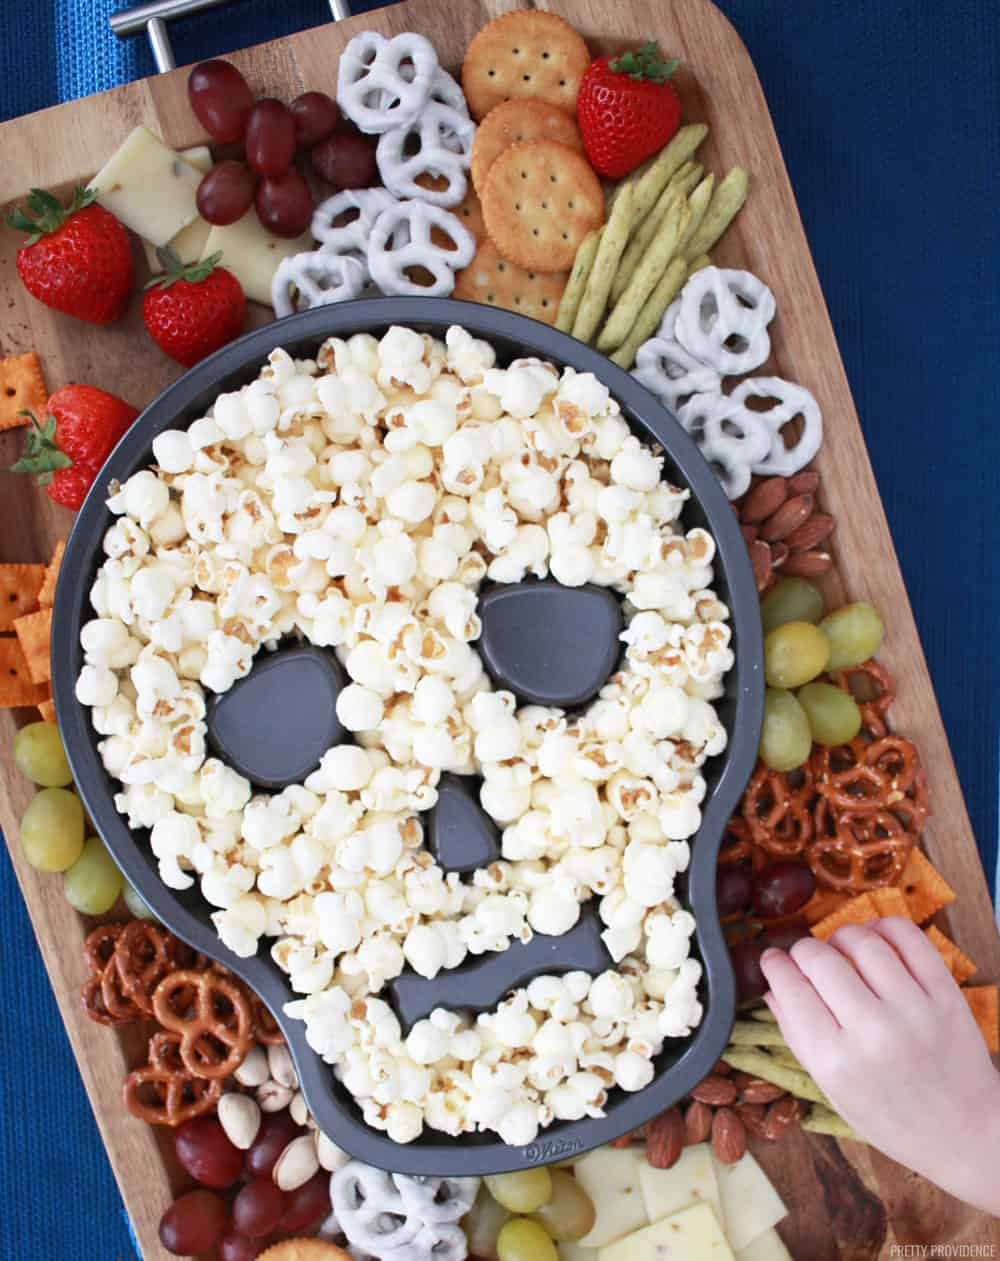 Halloween Snacks like pretzels, fruit, crackers and cheese on a serving board and popcorn in a skull shaped cake pan in the middle.